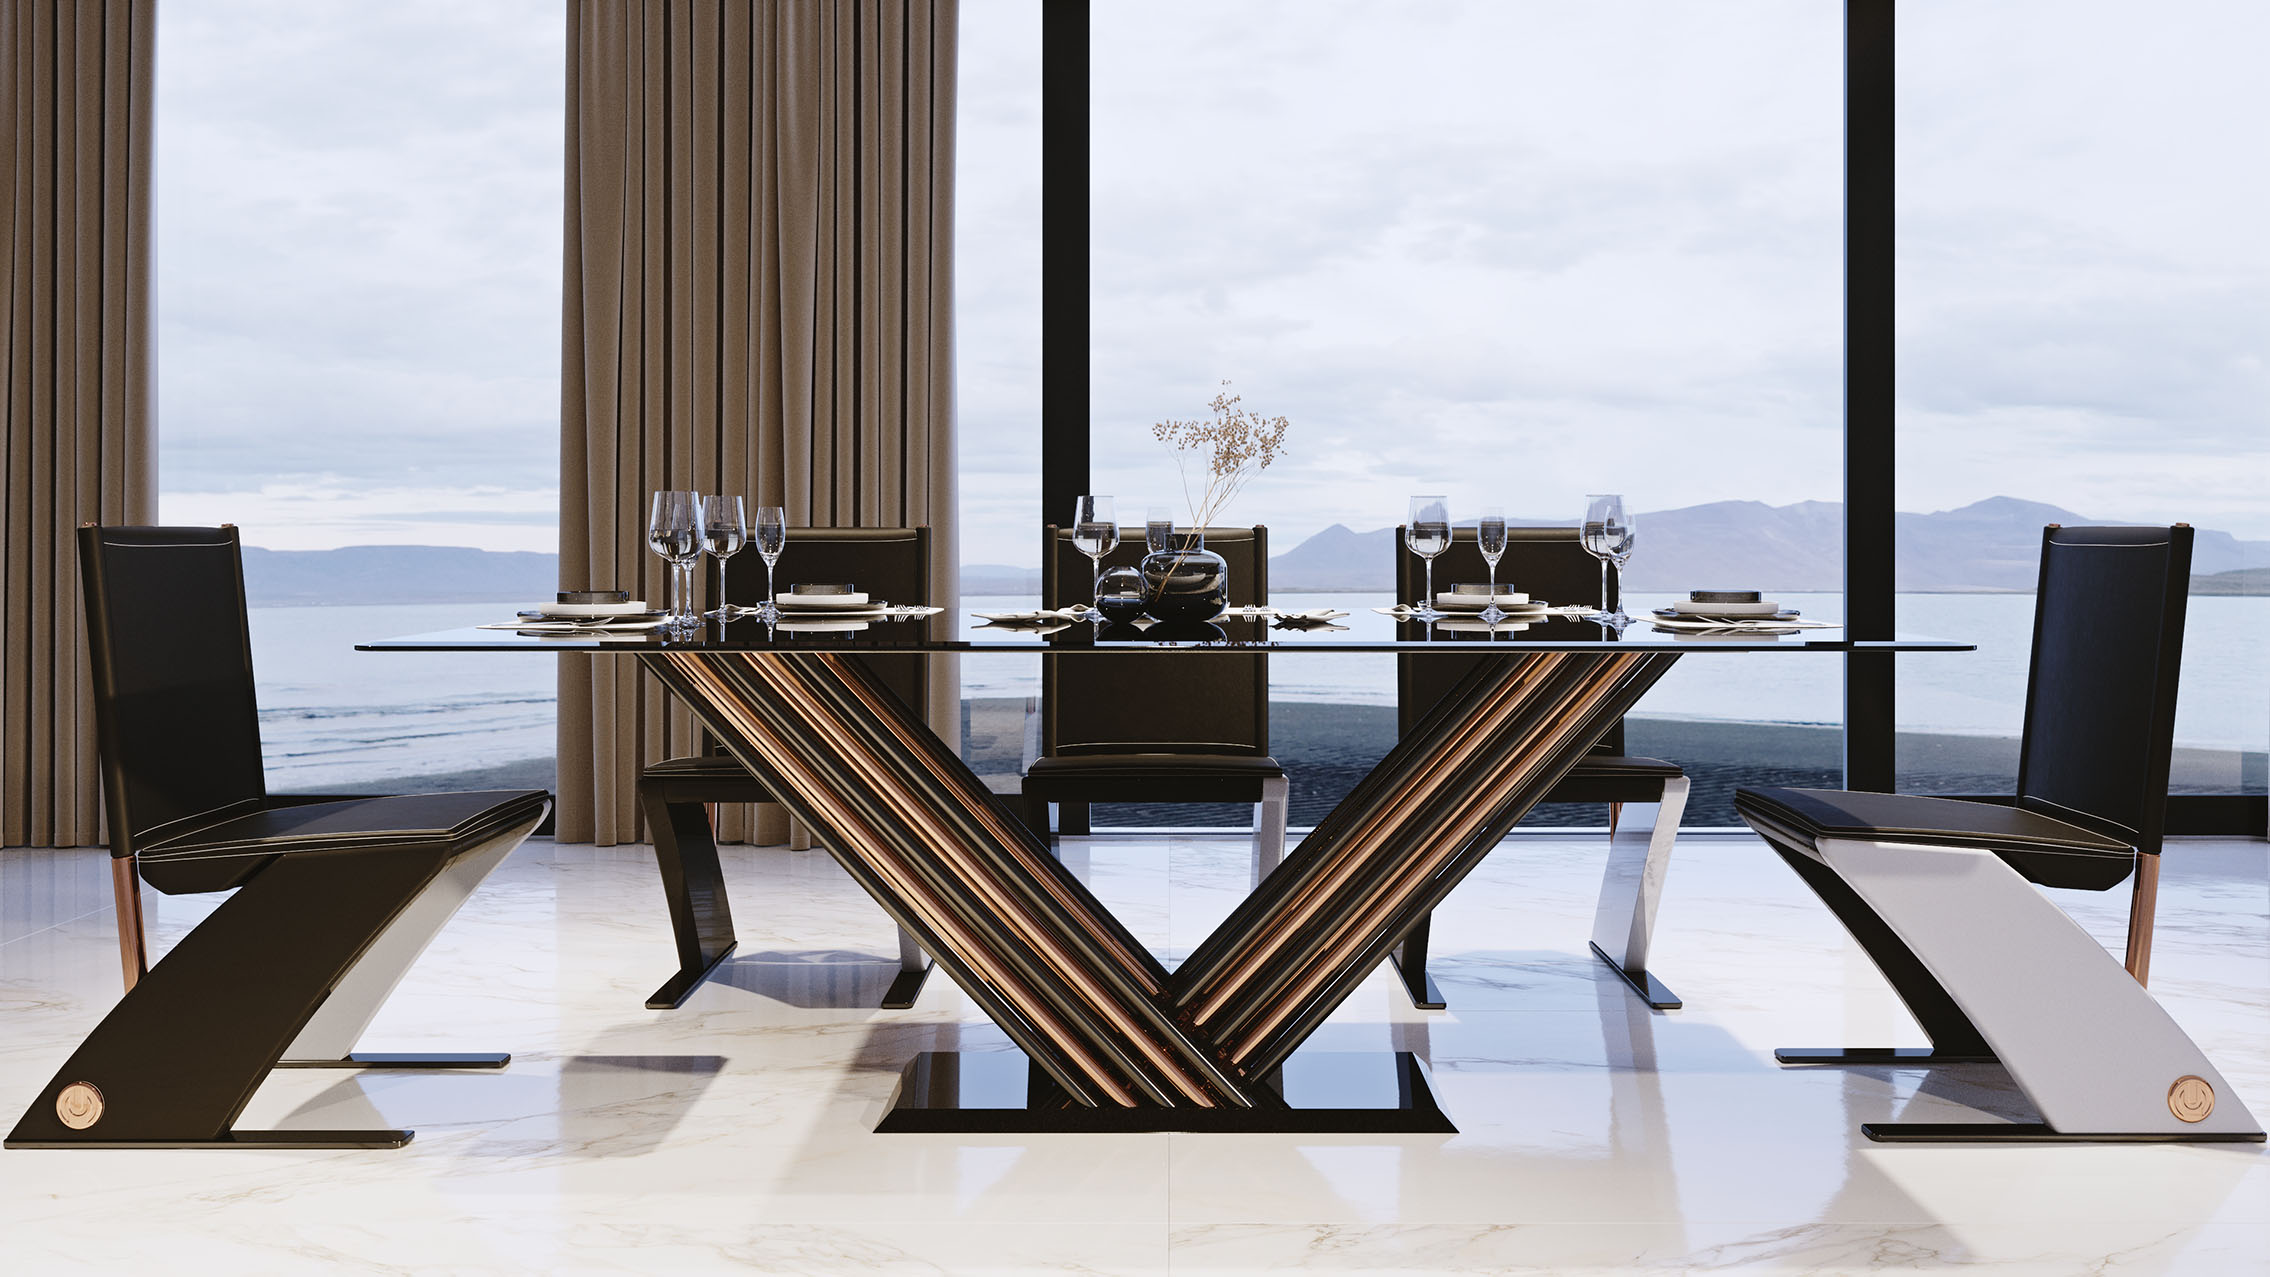 Vision dining table by Adam Edward Design